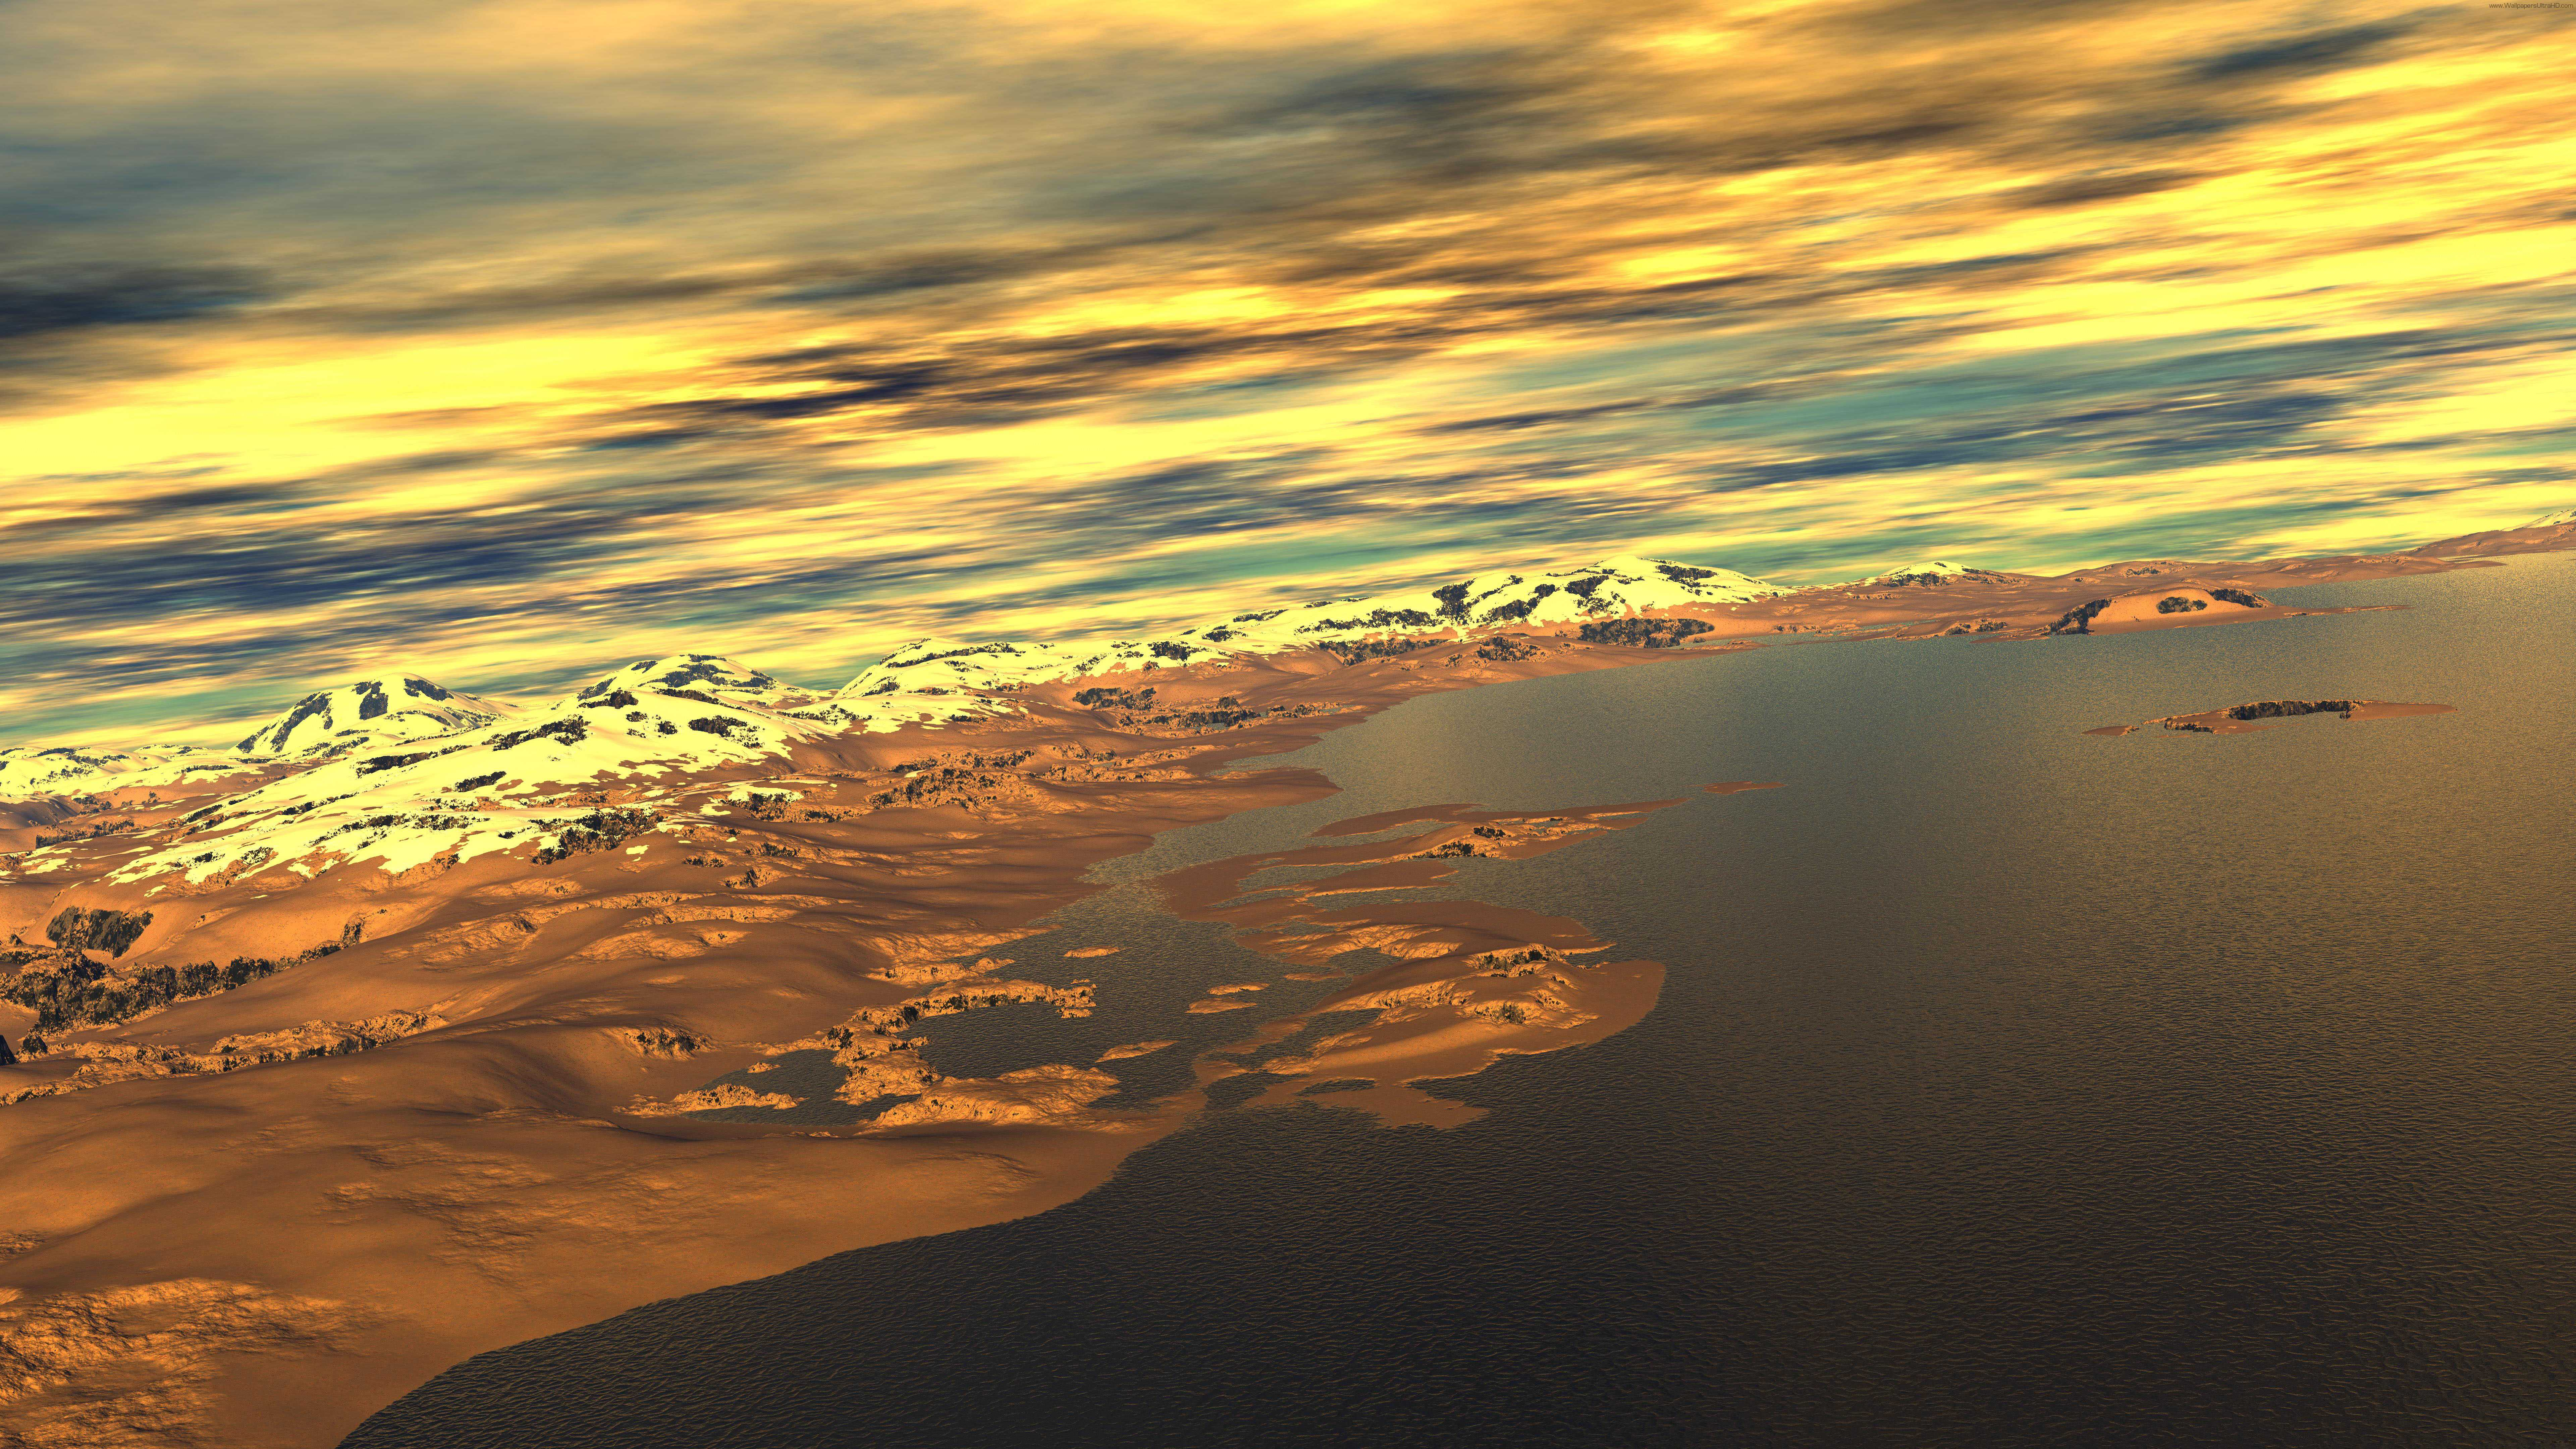 7680x4320 wallpaper.wiki-Graphic-sunset-8k-wallpapers-PIC-WPE0013286 ...